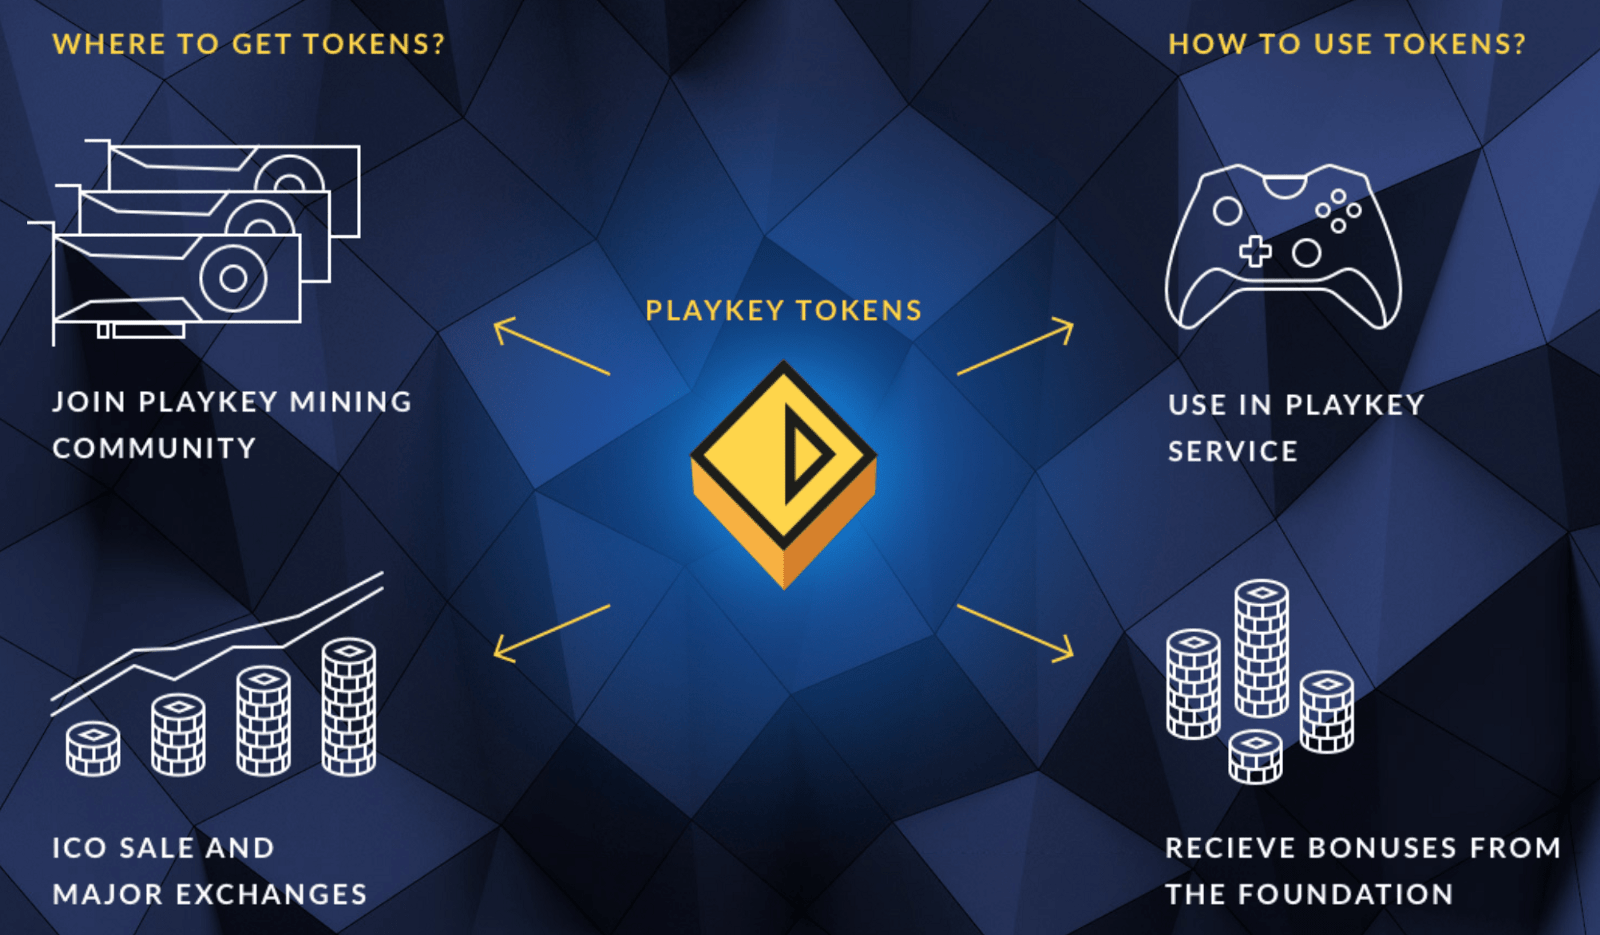 PKT Playkey coin